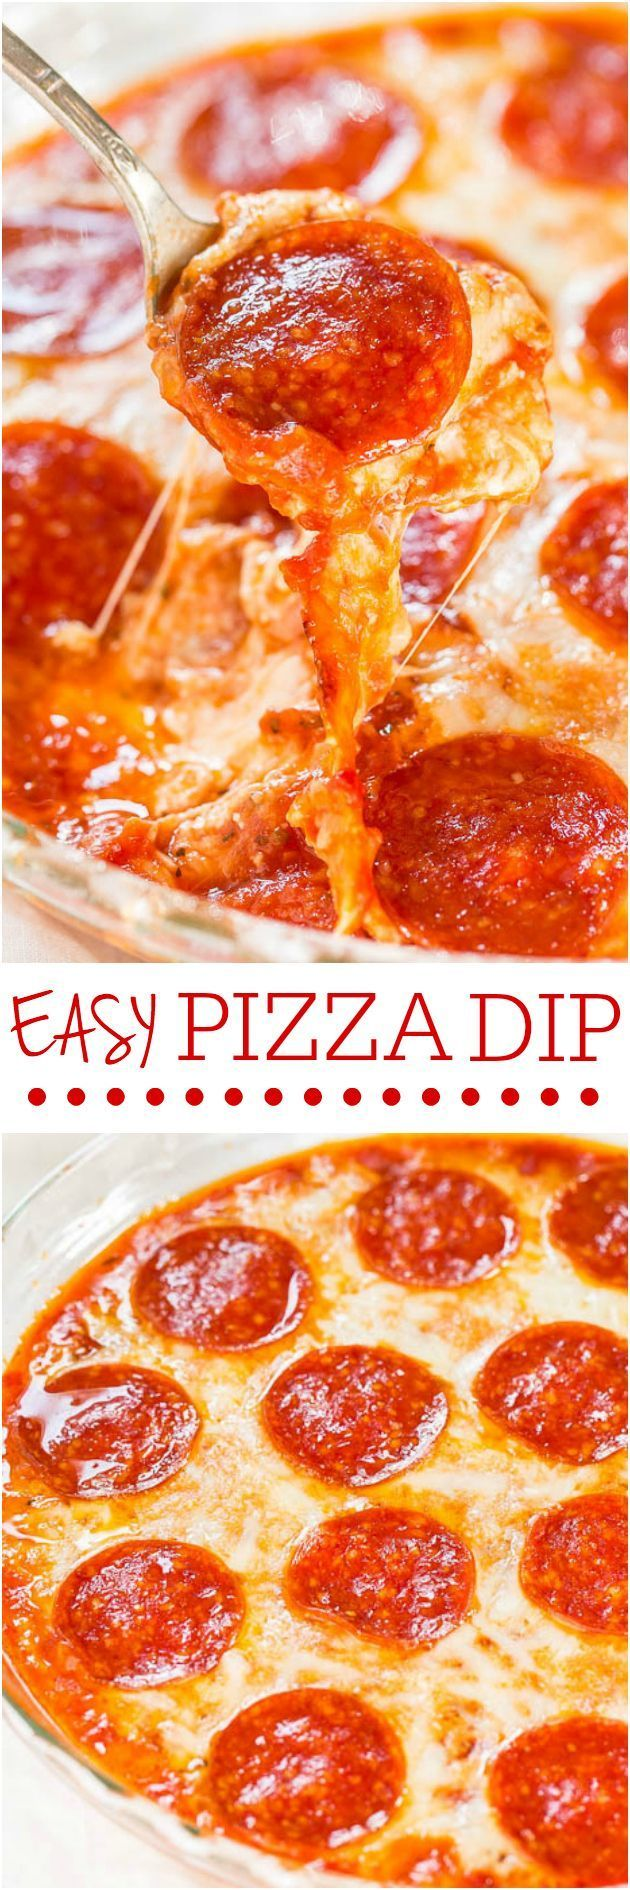 Easy Pizza Dip - Cheese lovers and pizza fans will love this fast and easy dip!! Perfect party food that's a guaranteed hit! #MemorialDay party food!